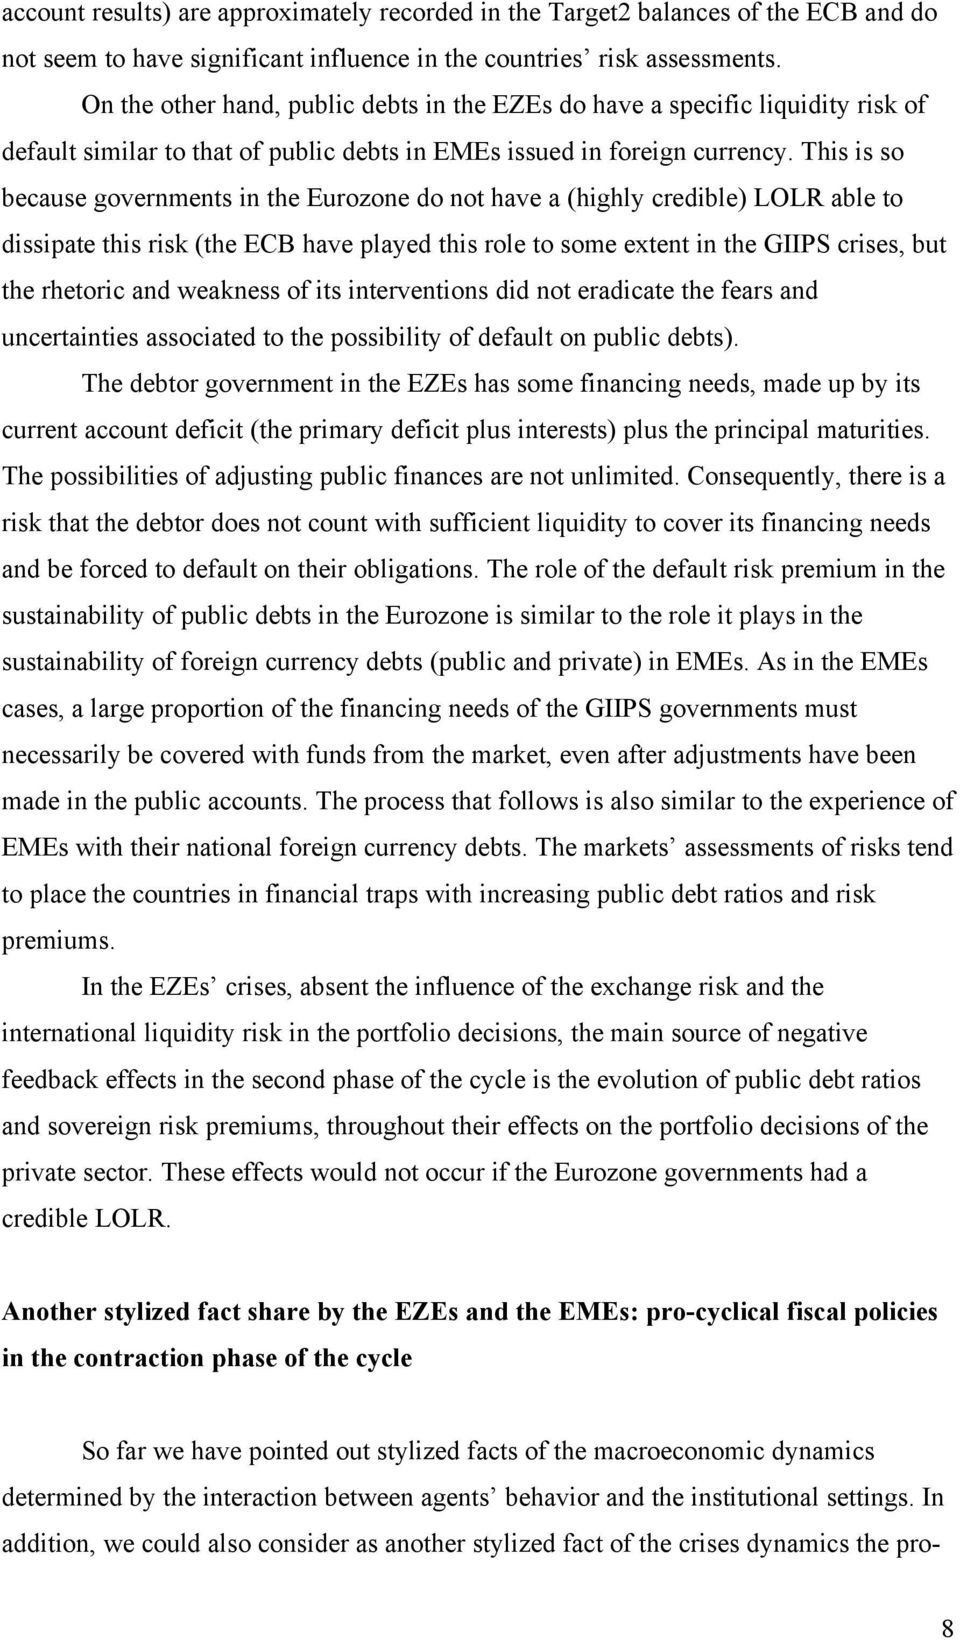 This is so because governments in the Eurozone do not have a (highly credible) LOLR able to dissipate this risk (the ECB have played this role to some extent in the GIIPS crises, but the rhetoric and